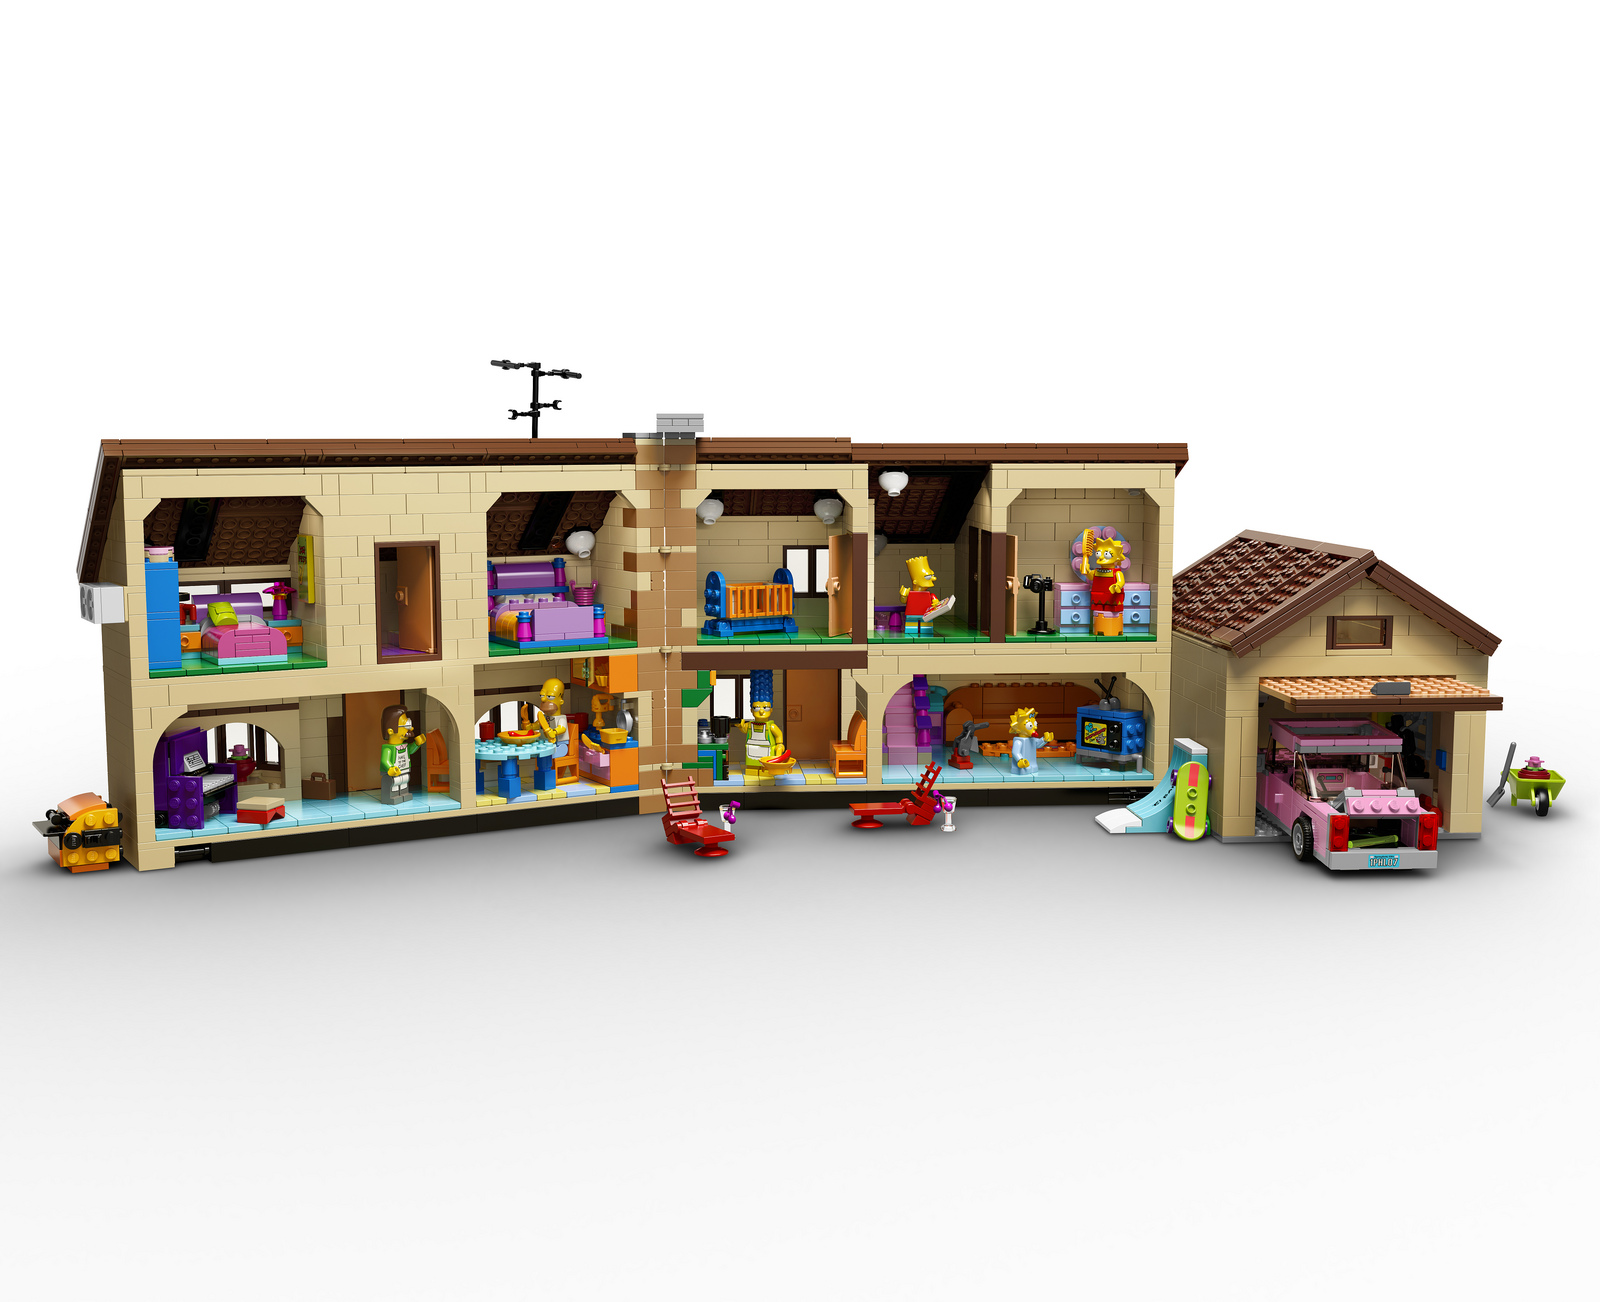 le kit lego officiel de la maison des simpsons